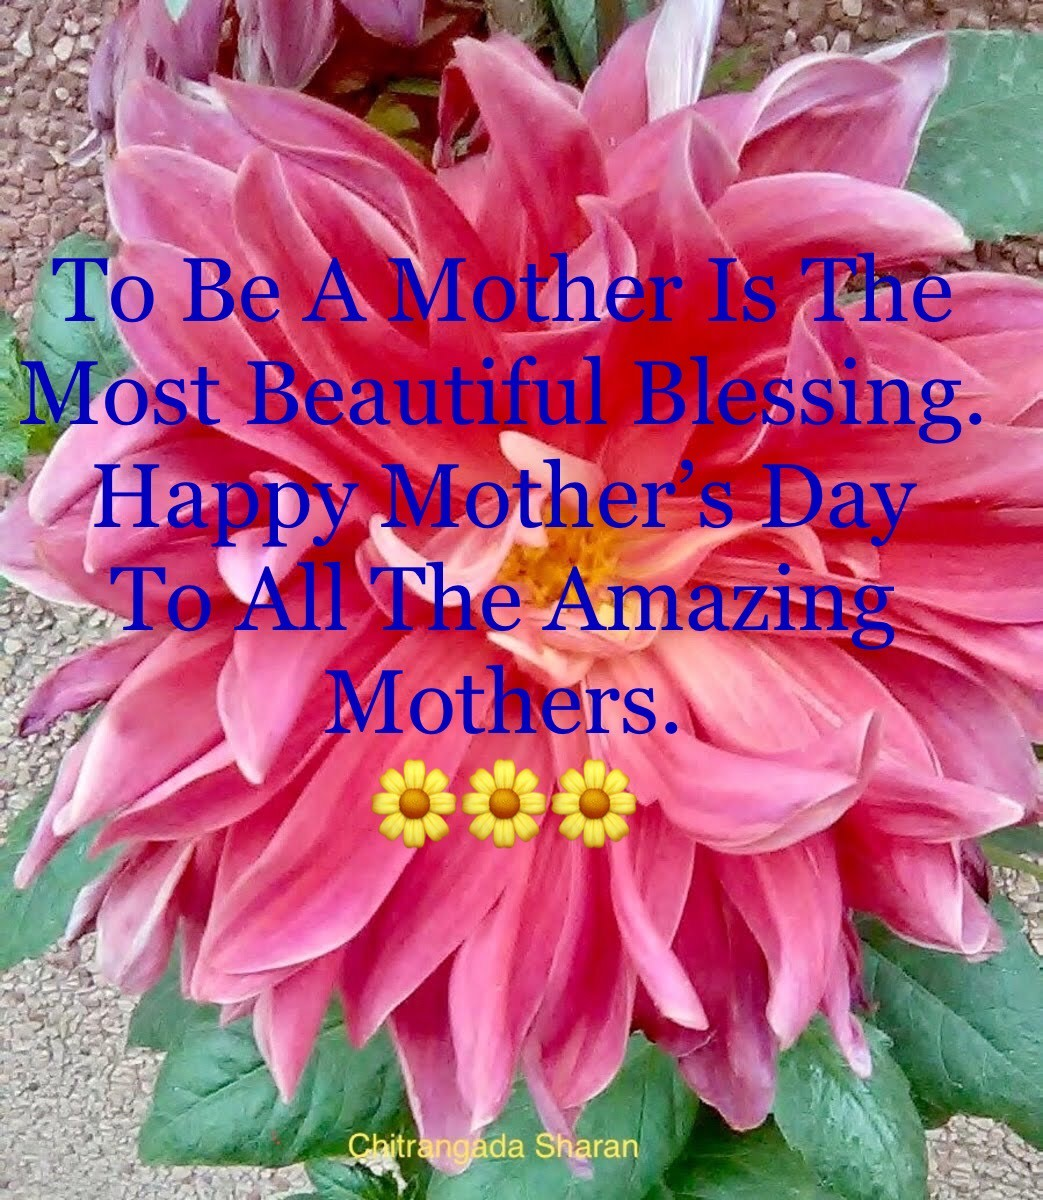 21 Beautiful Mother's Day Quotes 2021